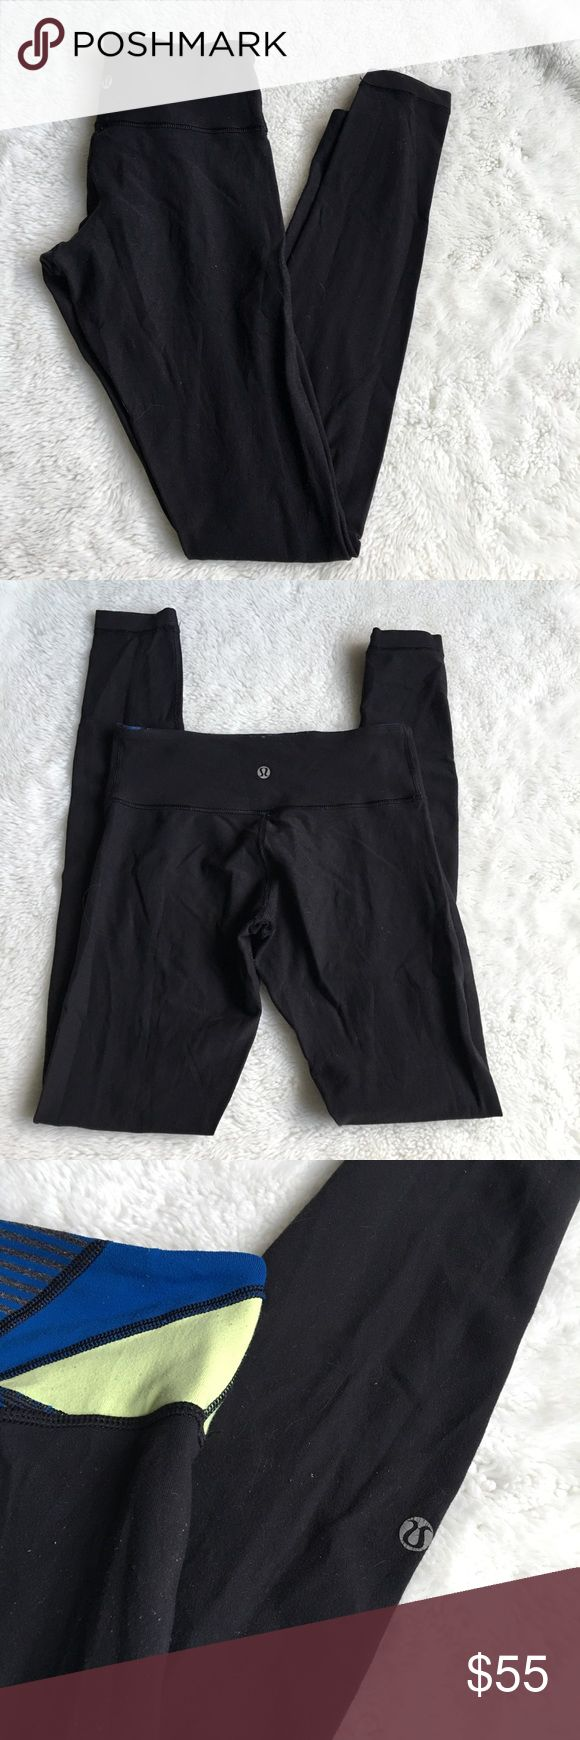 "Lululemon Wunder Under Reversible Black Pants sz 4 Pre-owned authentic Lululemon Wunder Under Reversible Black Pants sz 4. Inseam is 30.5"" inches. Rise is 9"" inches. Waist laying flat is 12.5"" inches. Please look at pictures for better reference. Happy Shopping! lululemon athletica Pants"